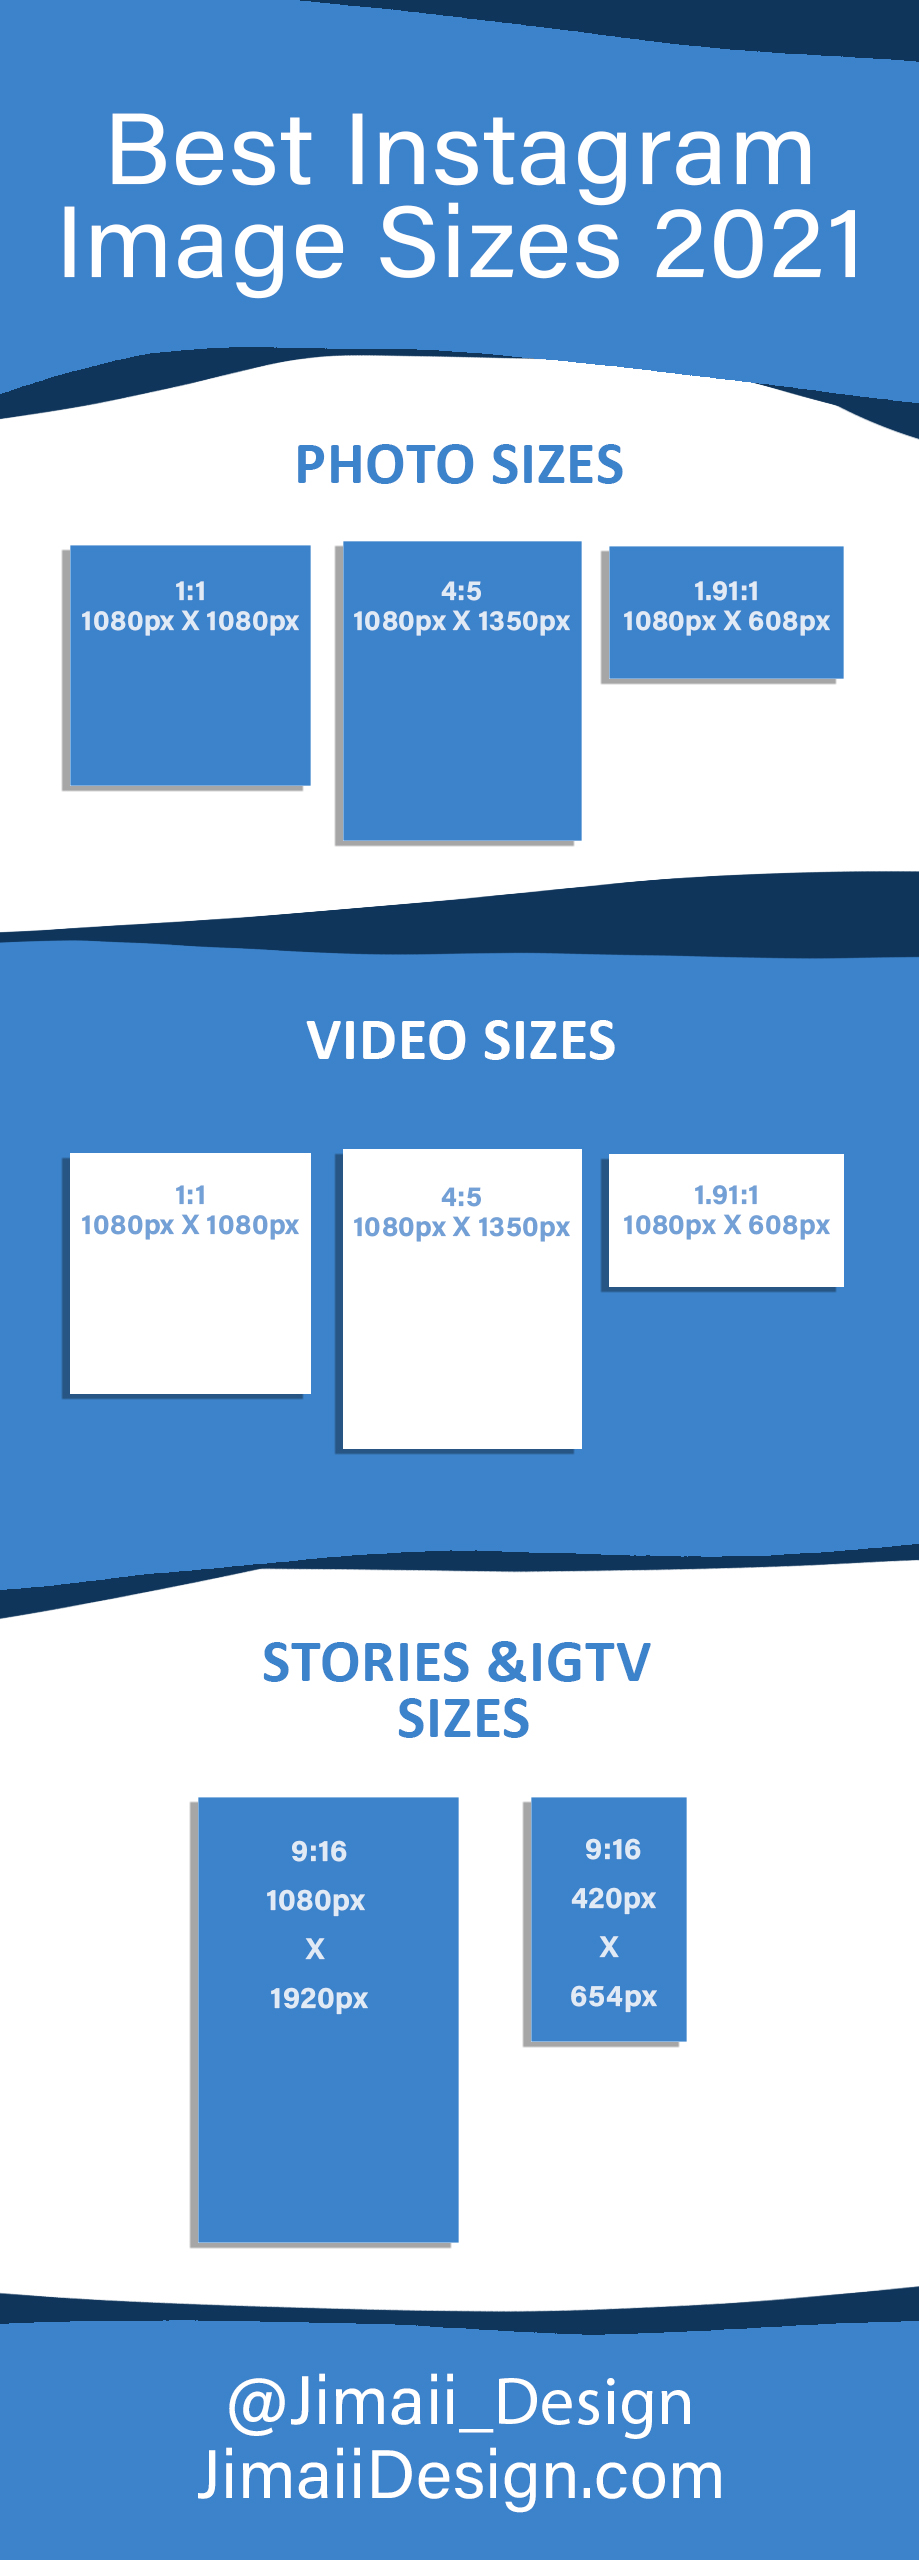 IG-photo-sizes-infographic-scaled BY Jimaii Design